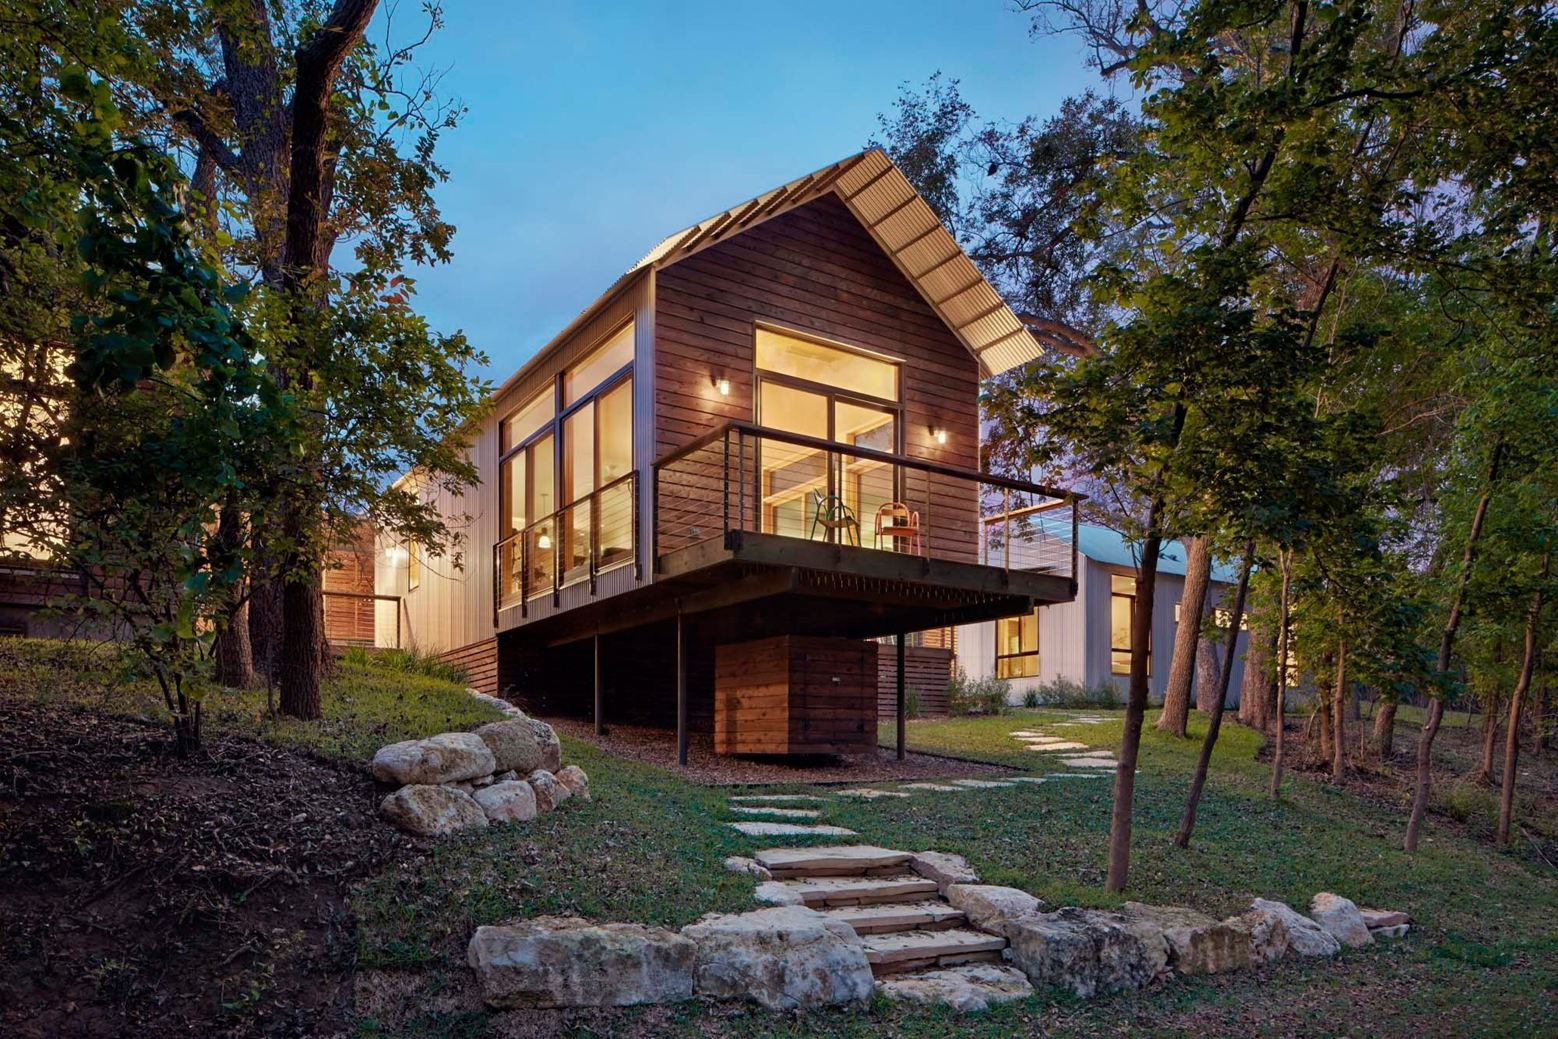 2001 Odyssey Residence in Wimberley, Texas by Lake|Flato